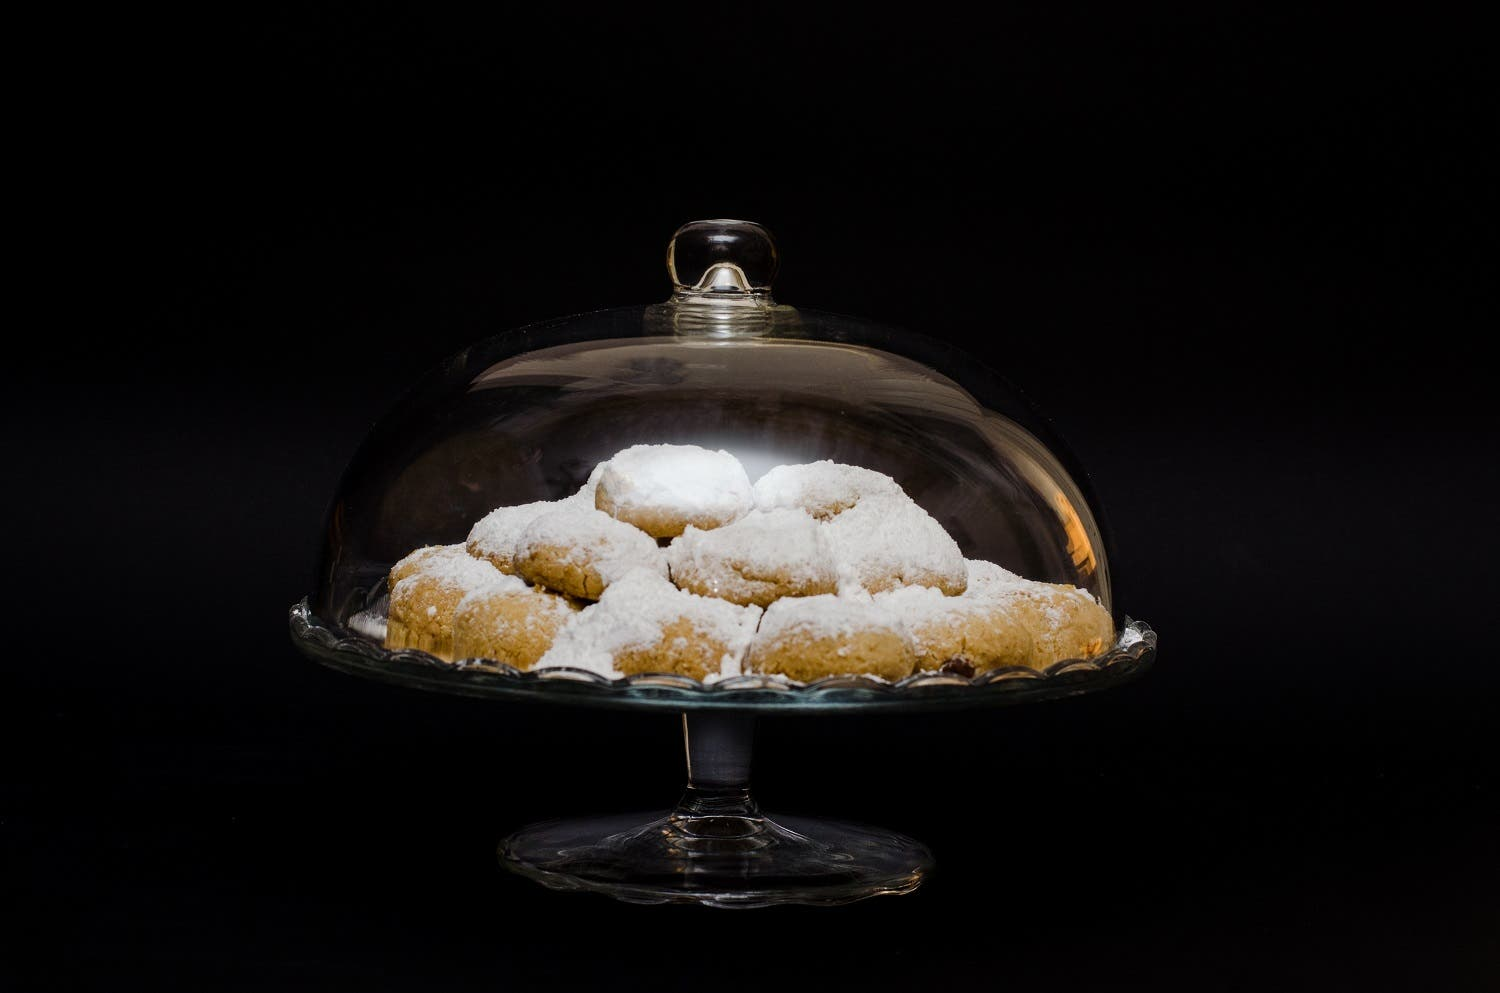 The key to mastering the perfect biscuit is getting those 'perfect cracks' on the surface.  (Shutterstock)